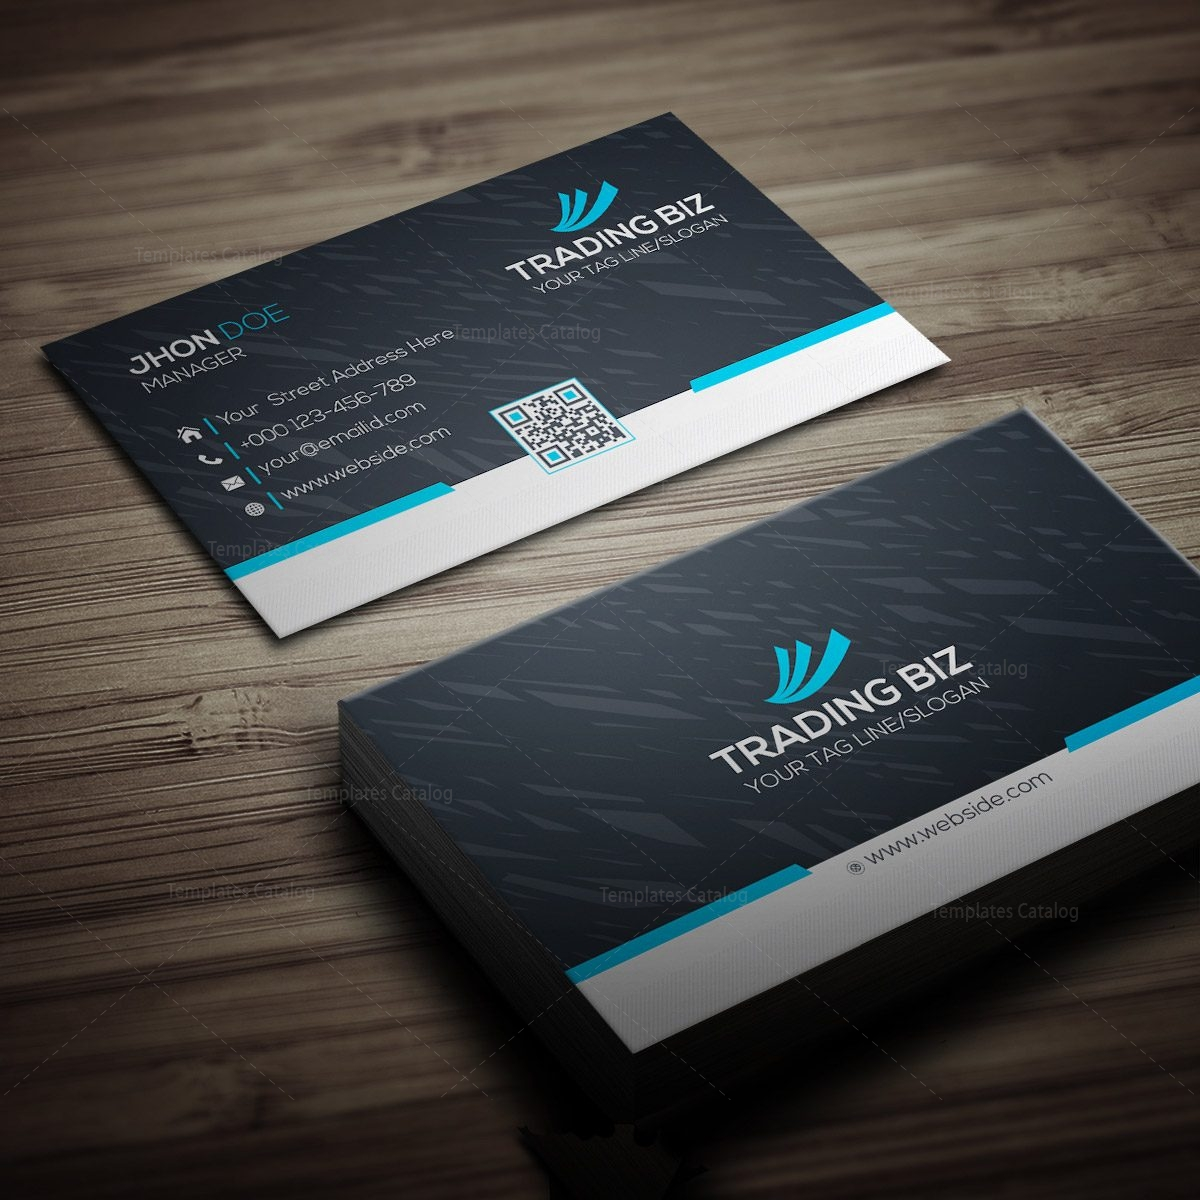 Trading Company Business Card 000269 - Template Catalog